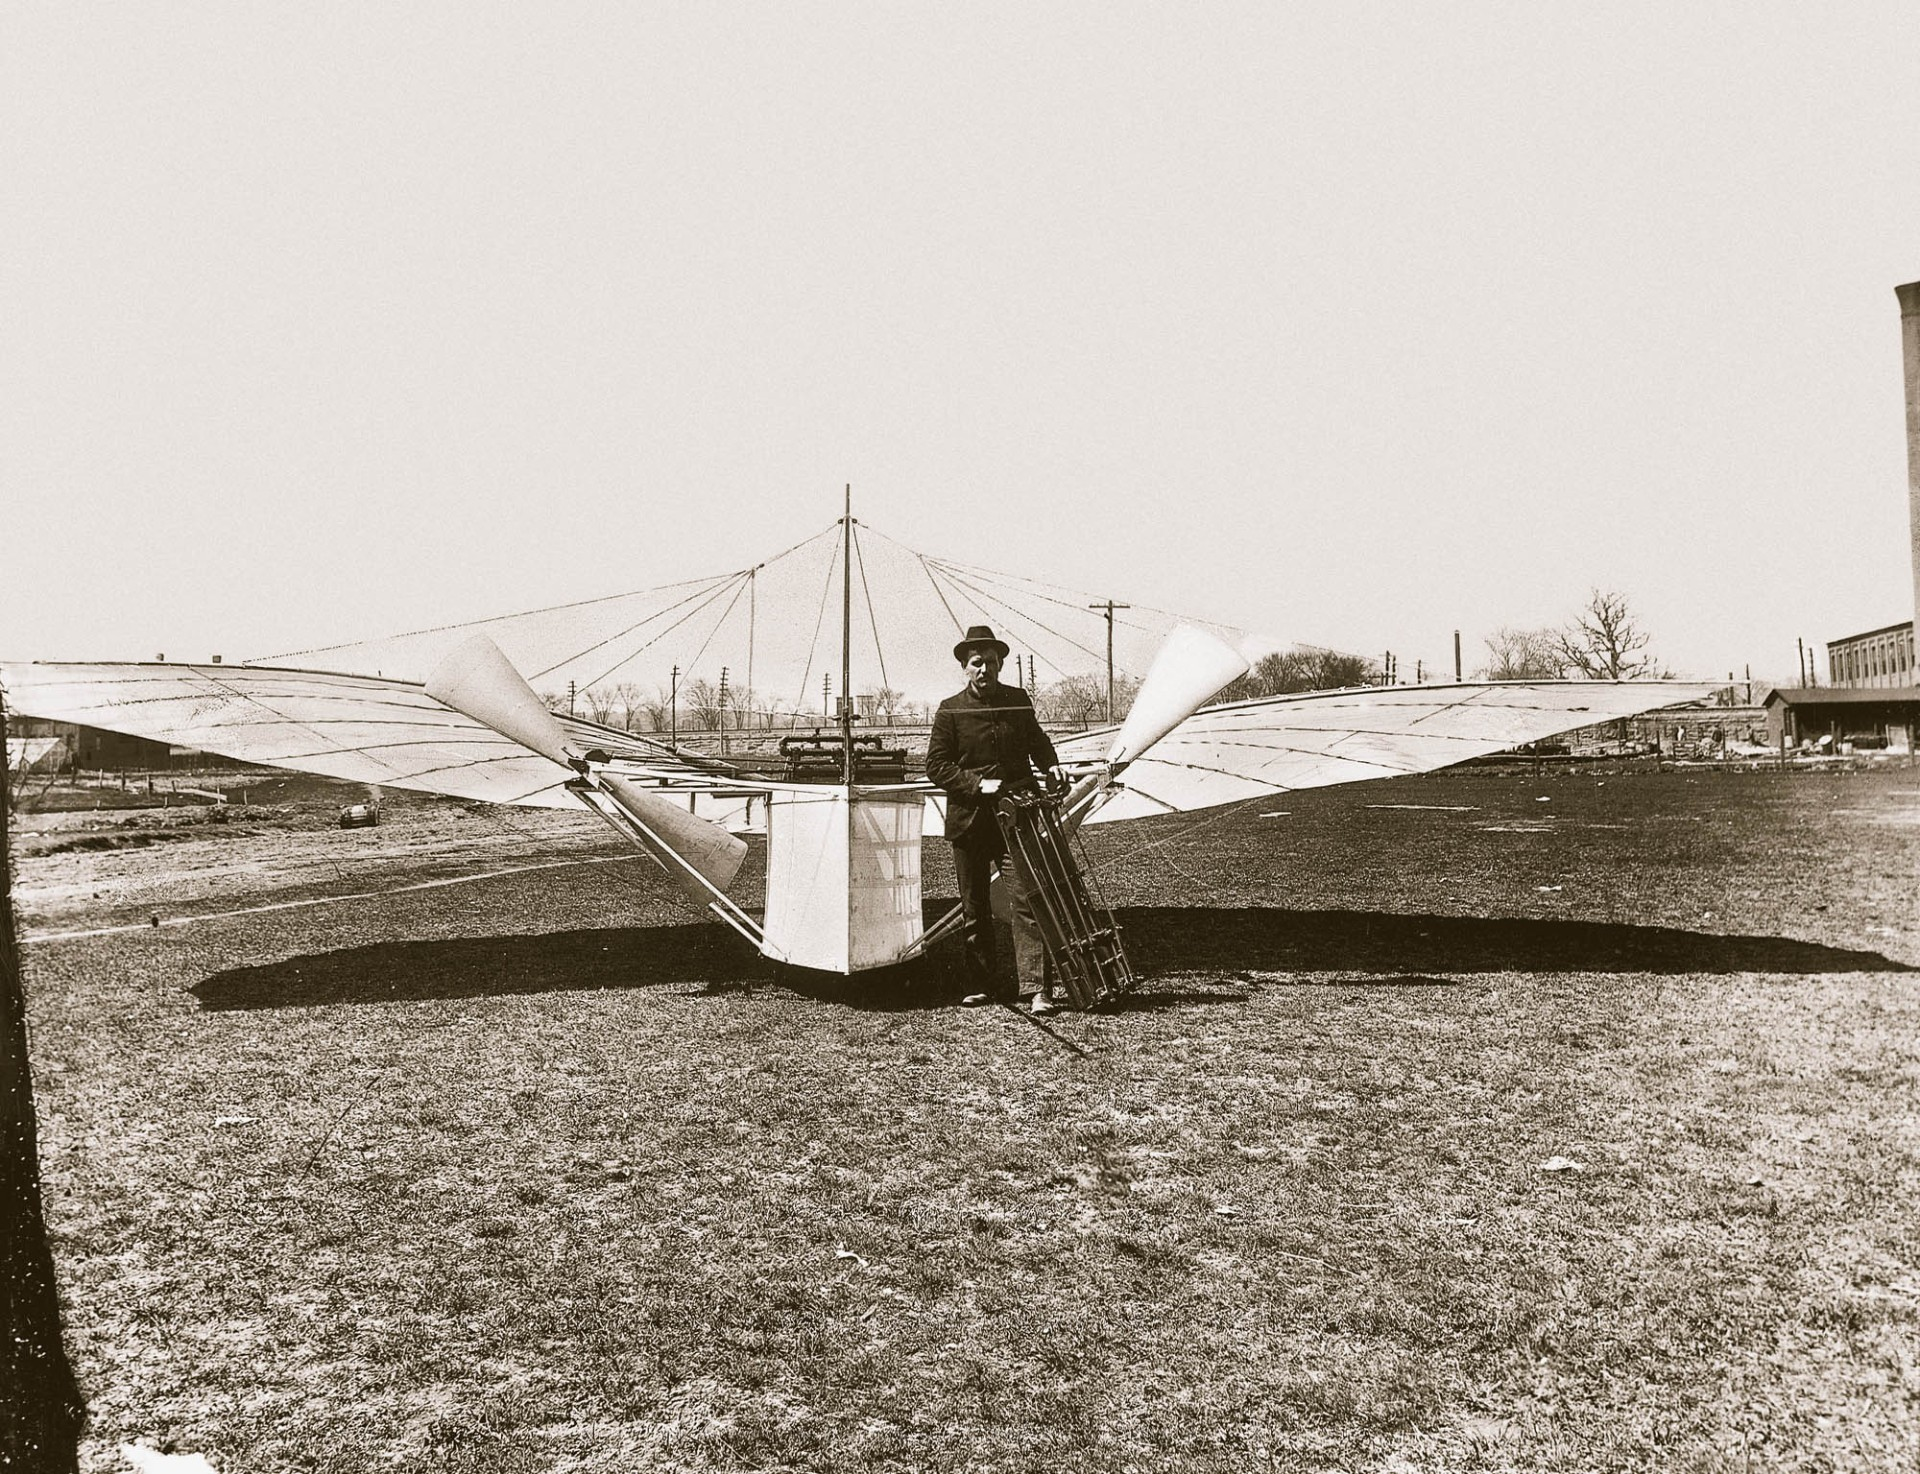 Were the Wright brothers really first? Photo sparks flight